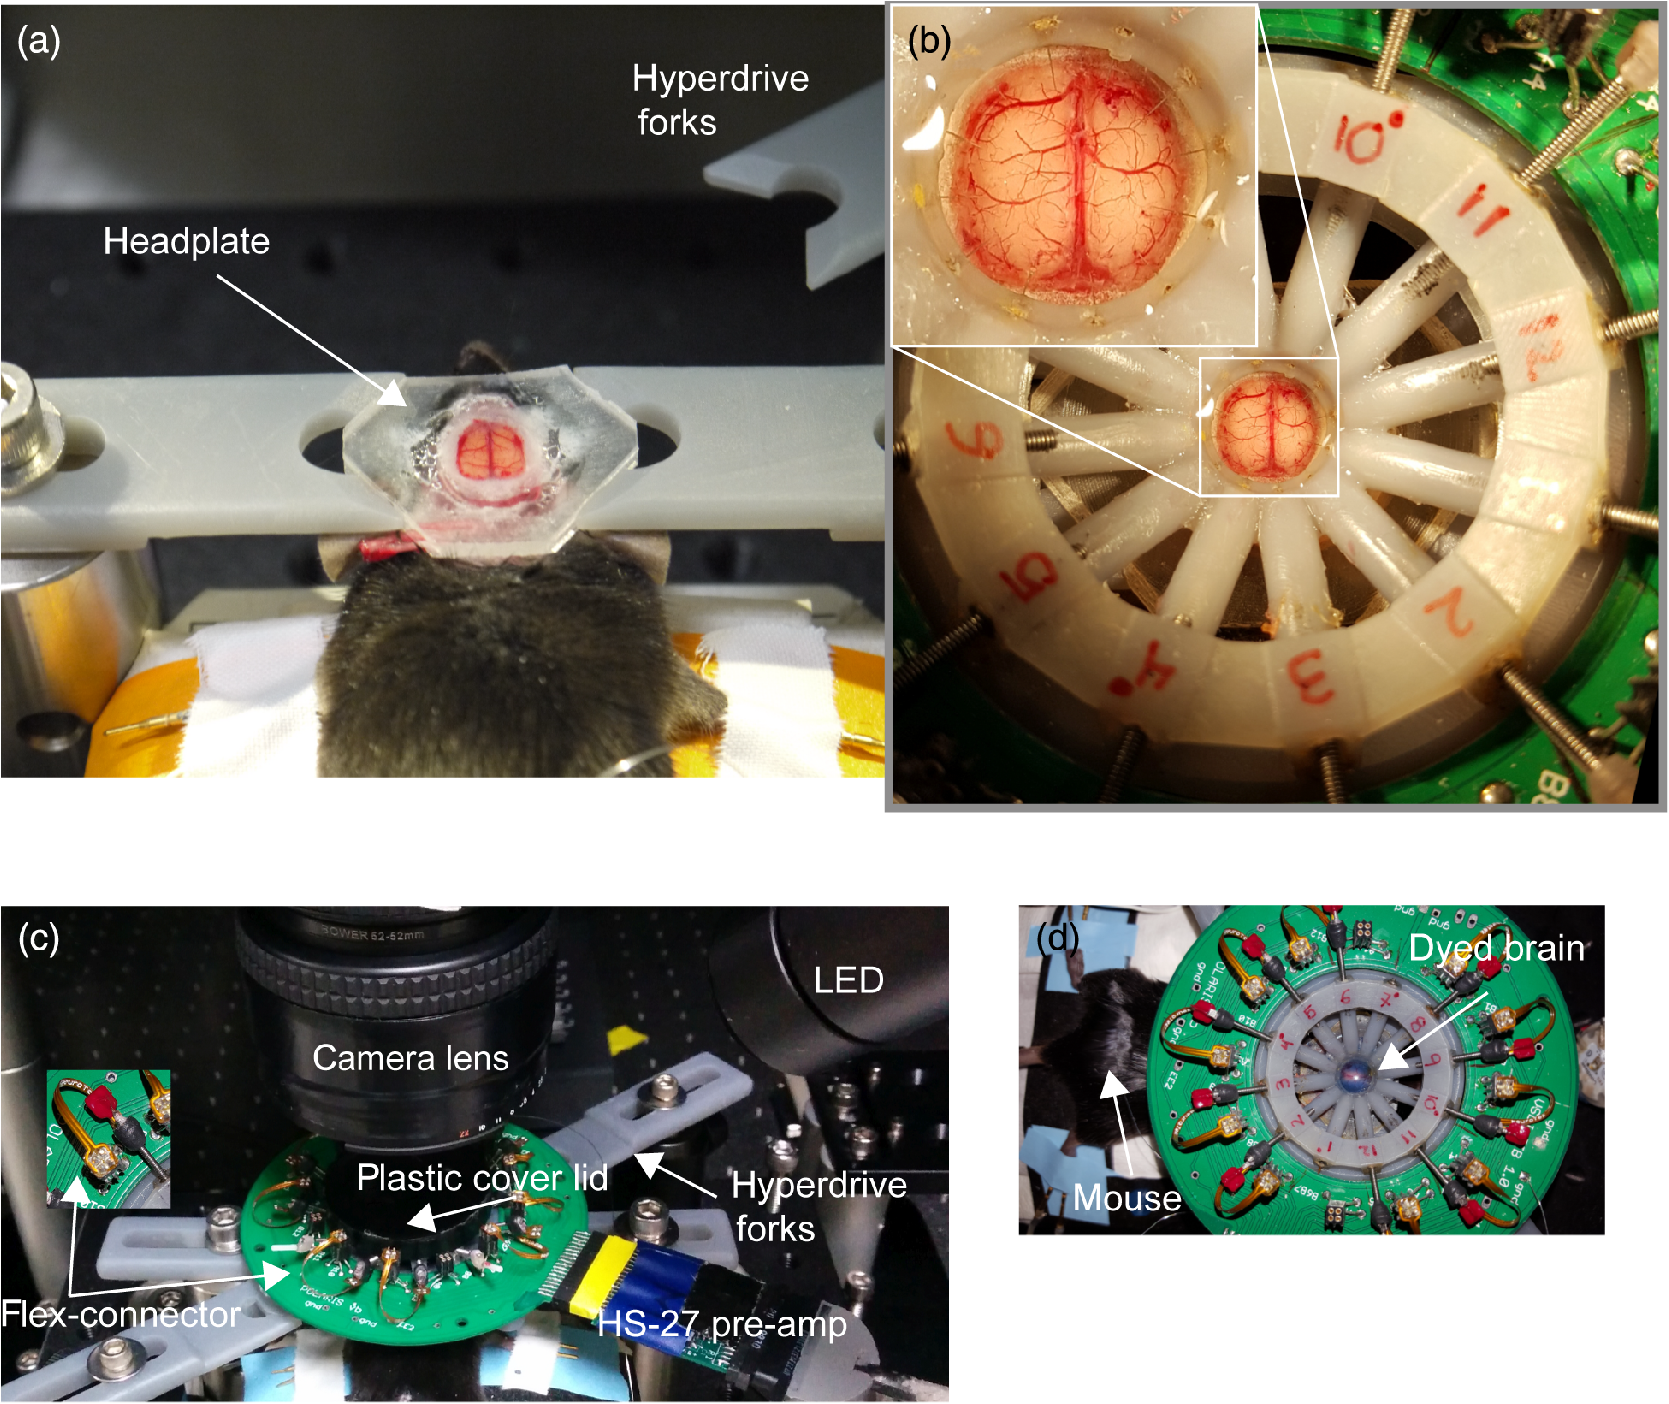 High Performance Inexpensive Setup For Simultaneous Multisite Circuit Board From A Defunct Optical Computer Mouse Picture Of The Brain Is Covered With Cover Lid Inset Flex Connectors D Top Down Overview Experimental When Has Been Dyed